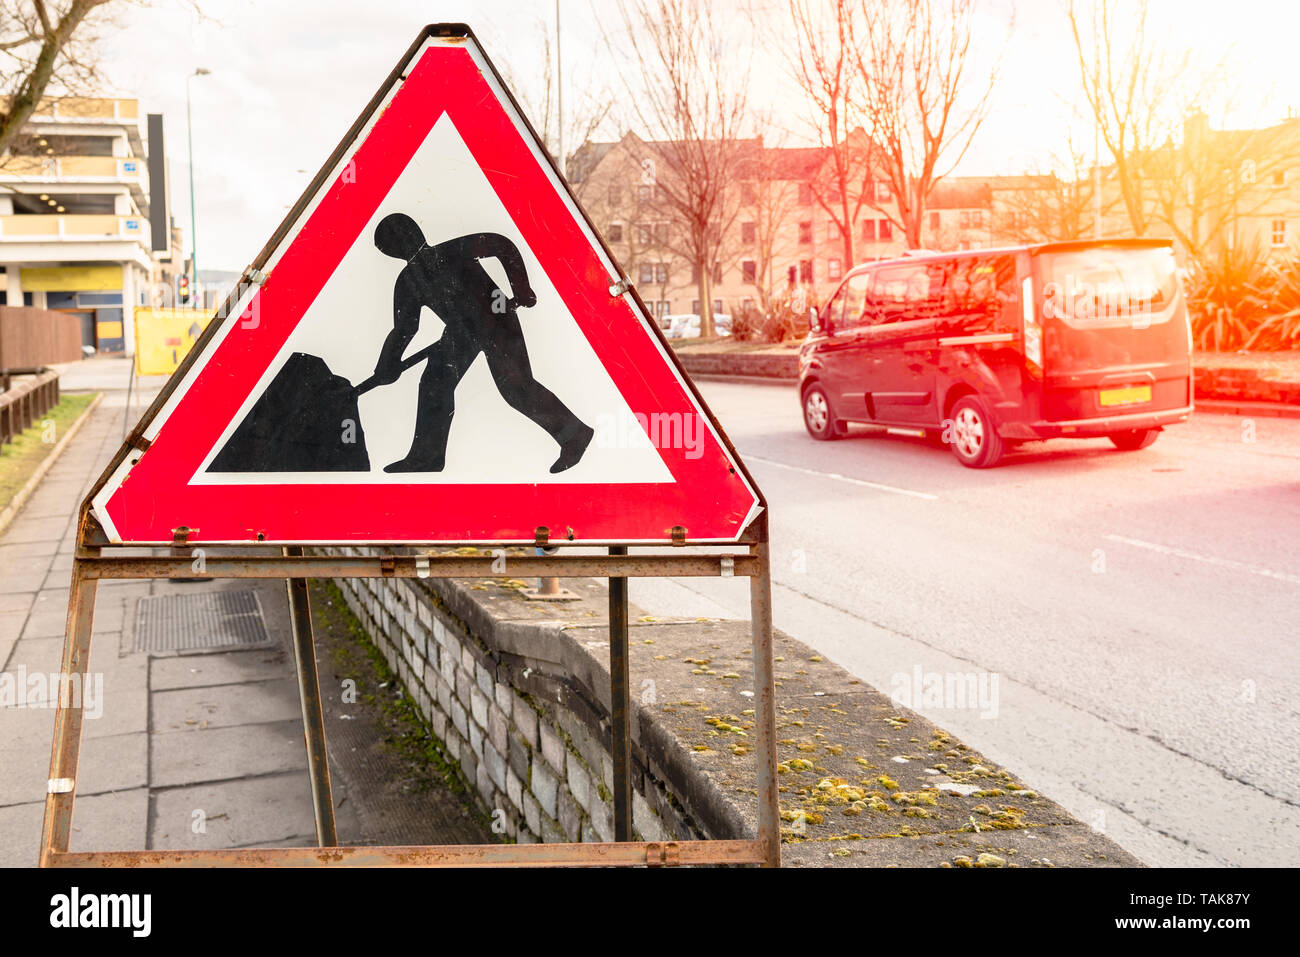 Men at work road sign at the beginning of a construction site along a street in a city centre - Stock Image